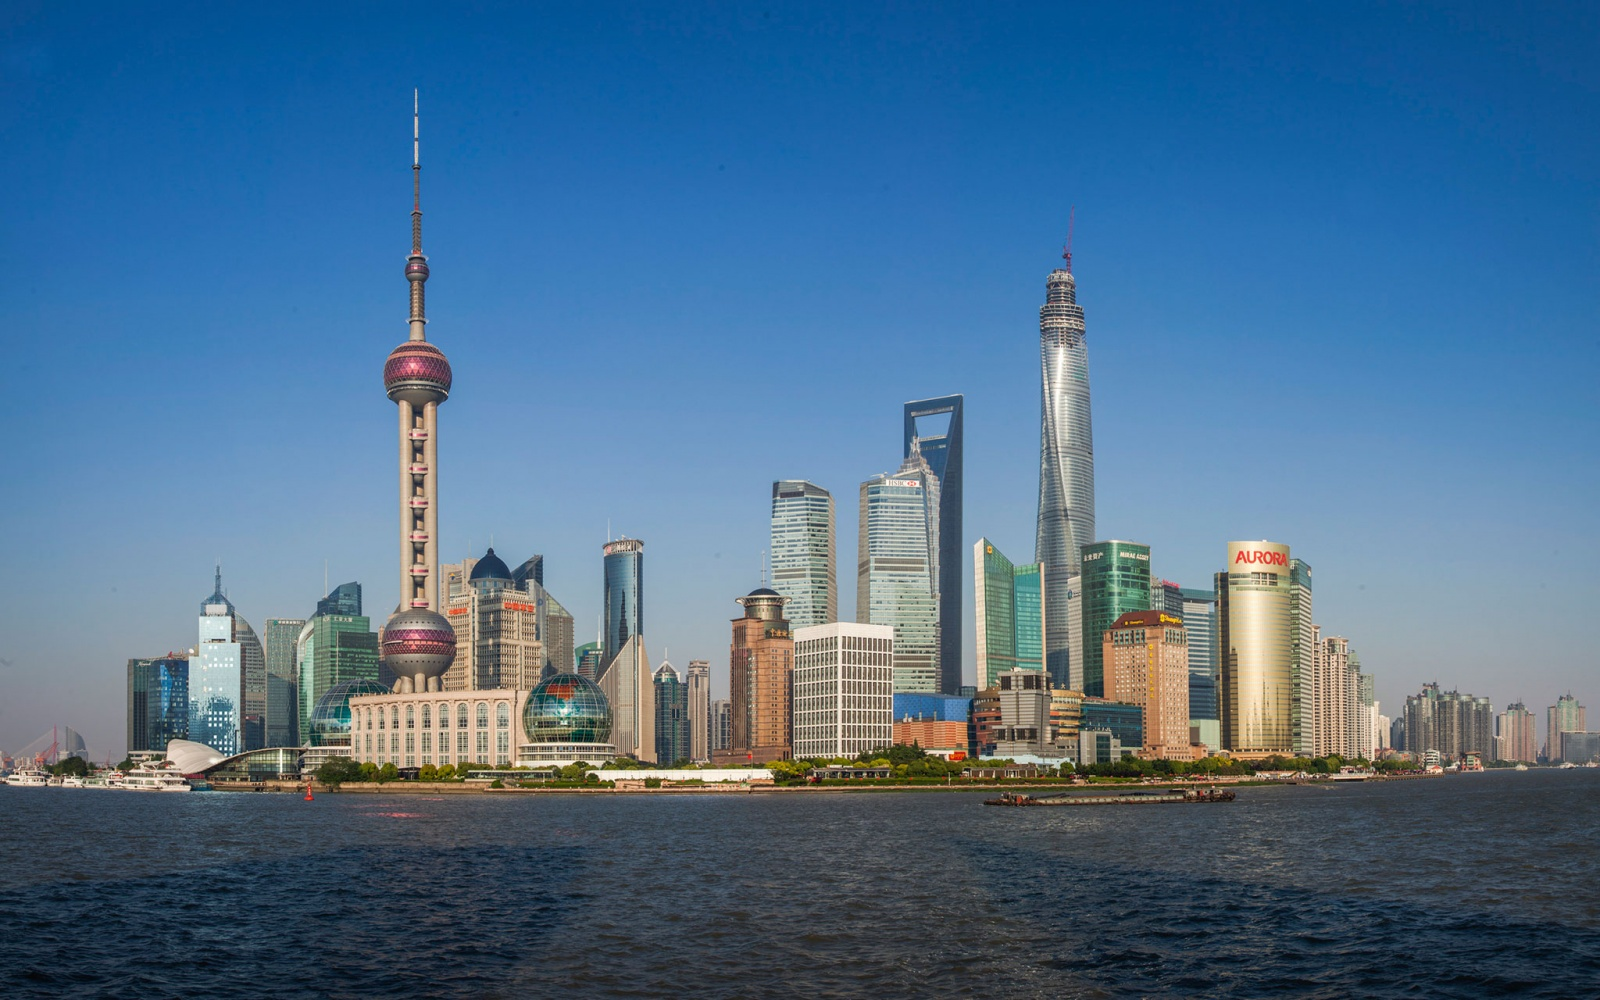 Shanghai Tower